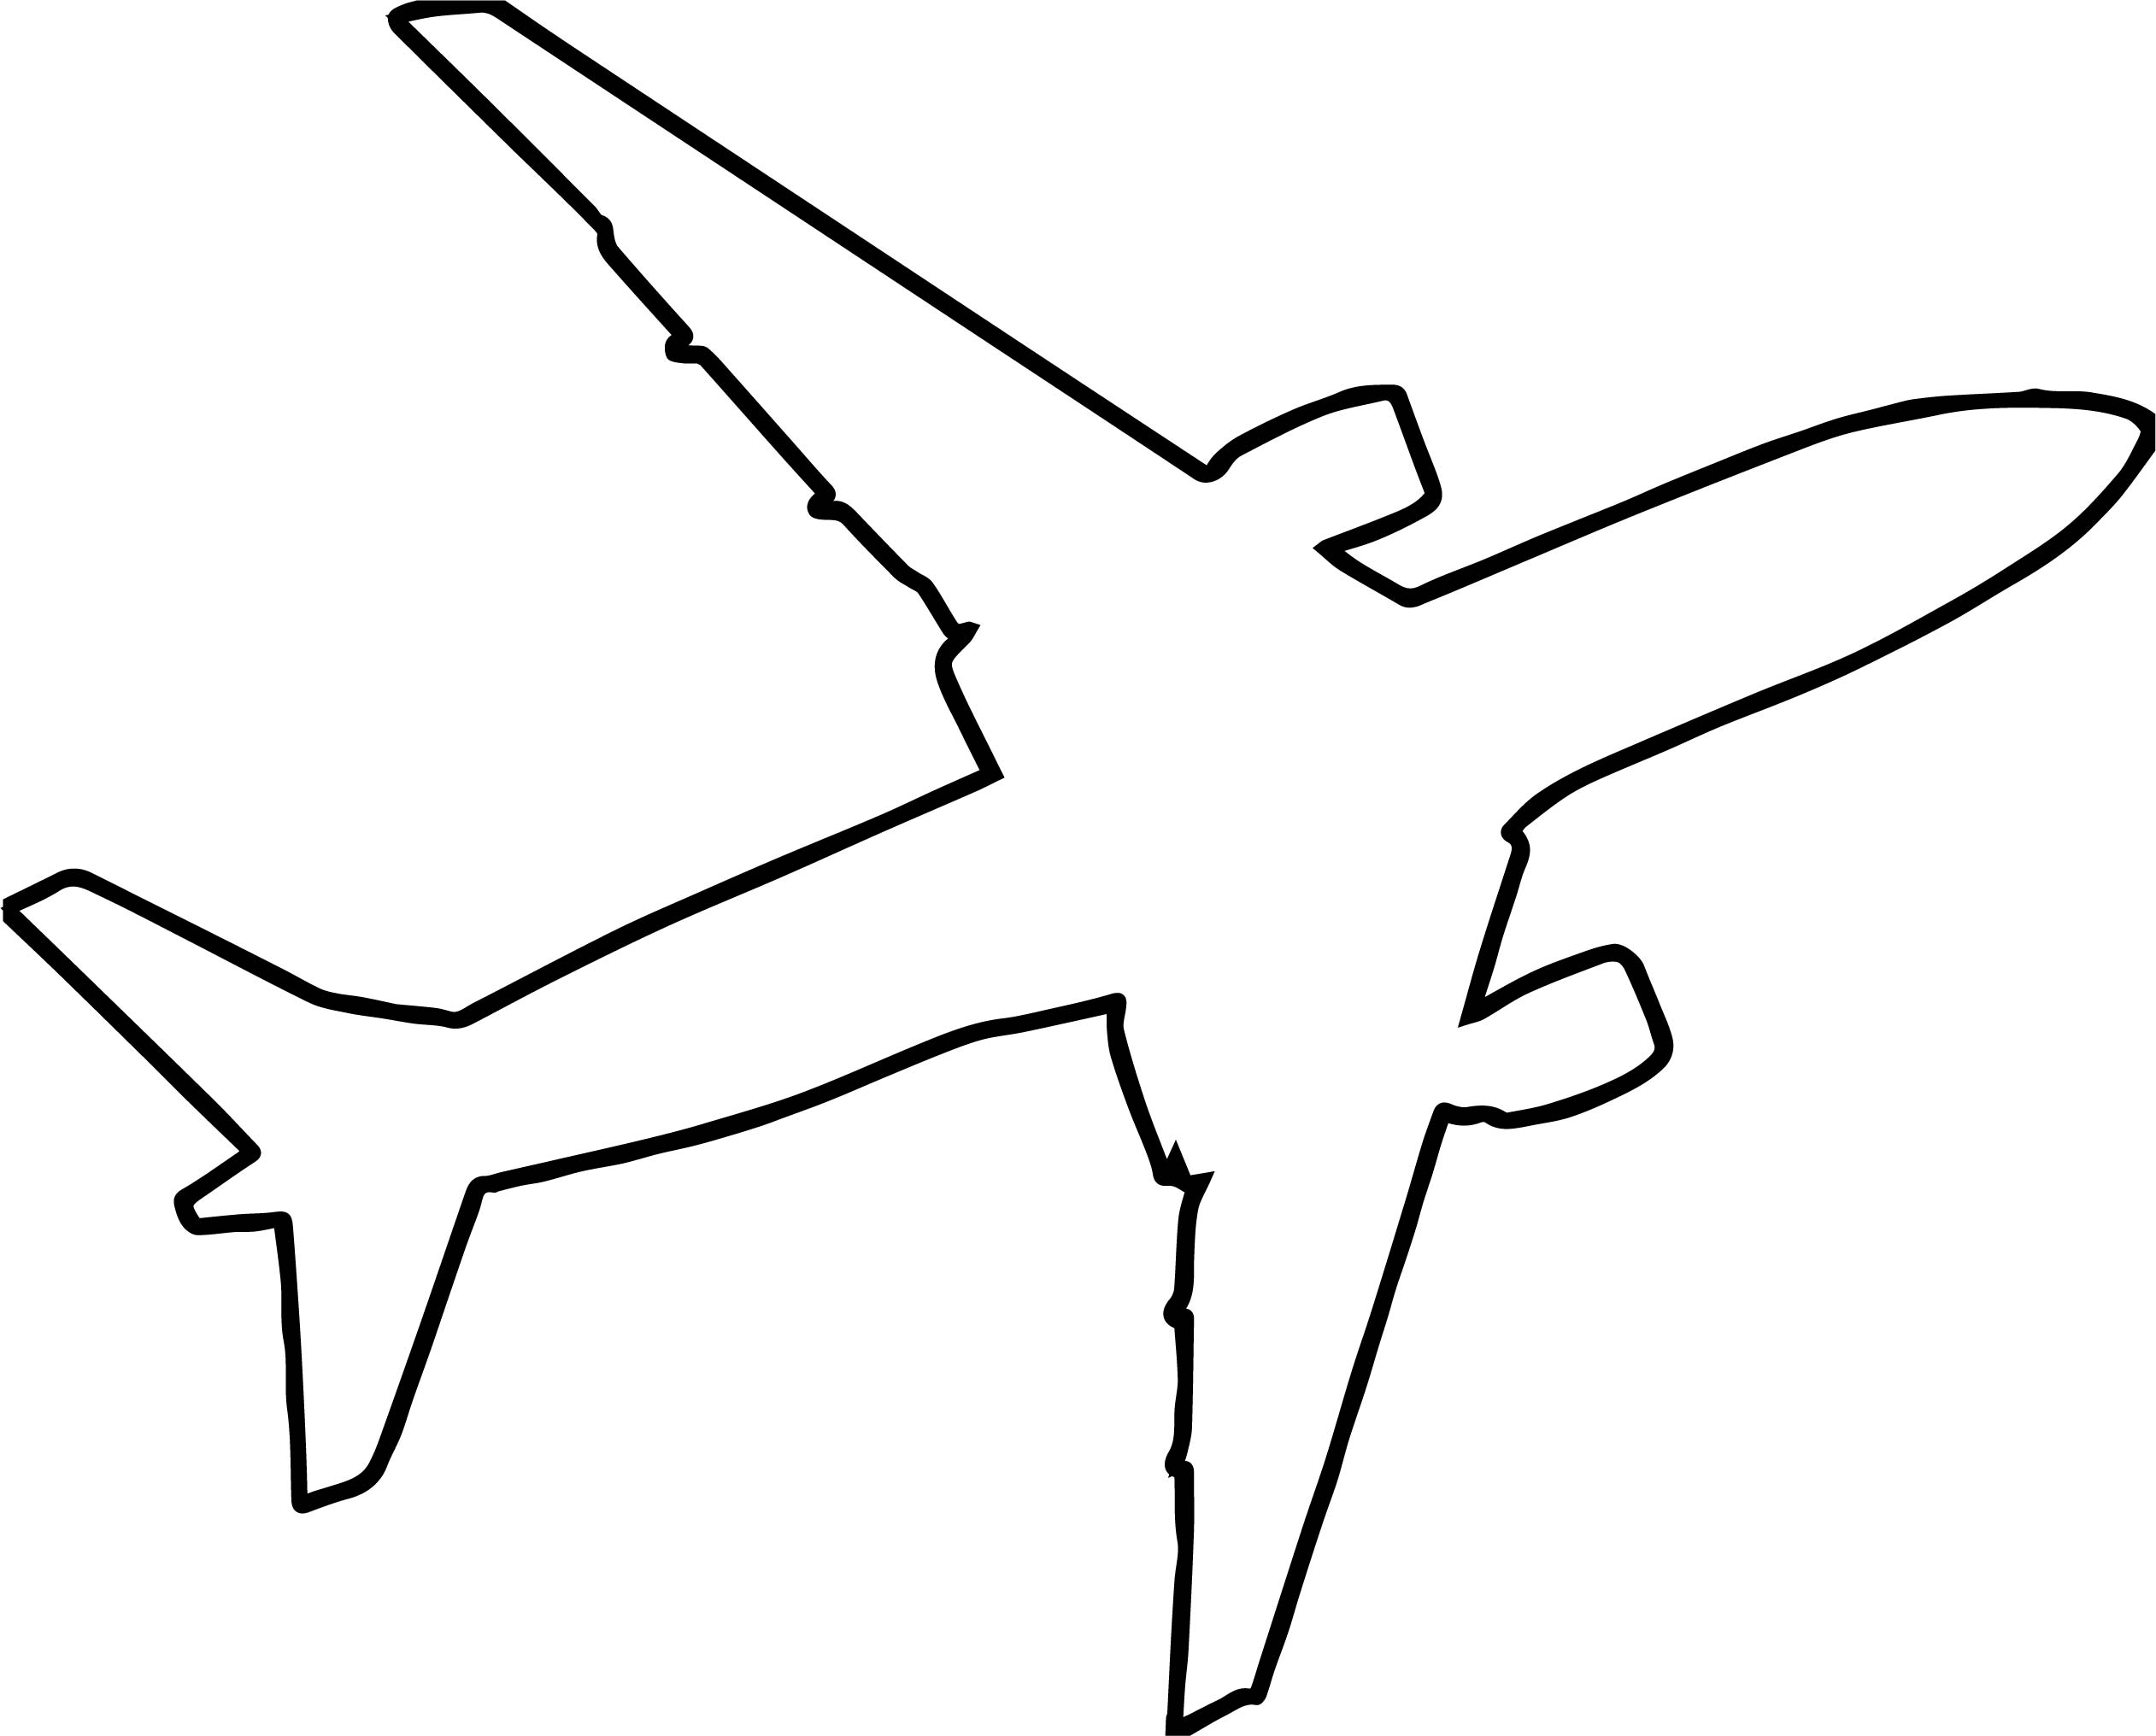 2523x2032 Airplane Outline Silhouette Coloring Page Wecoloringpage